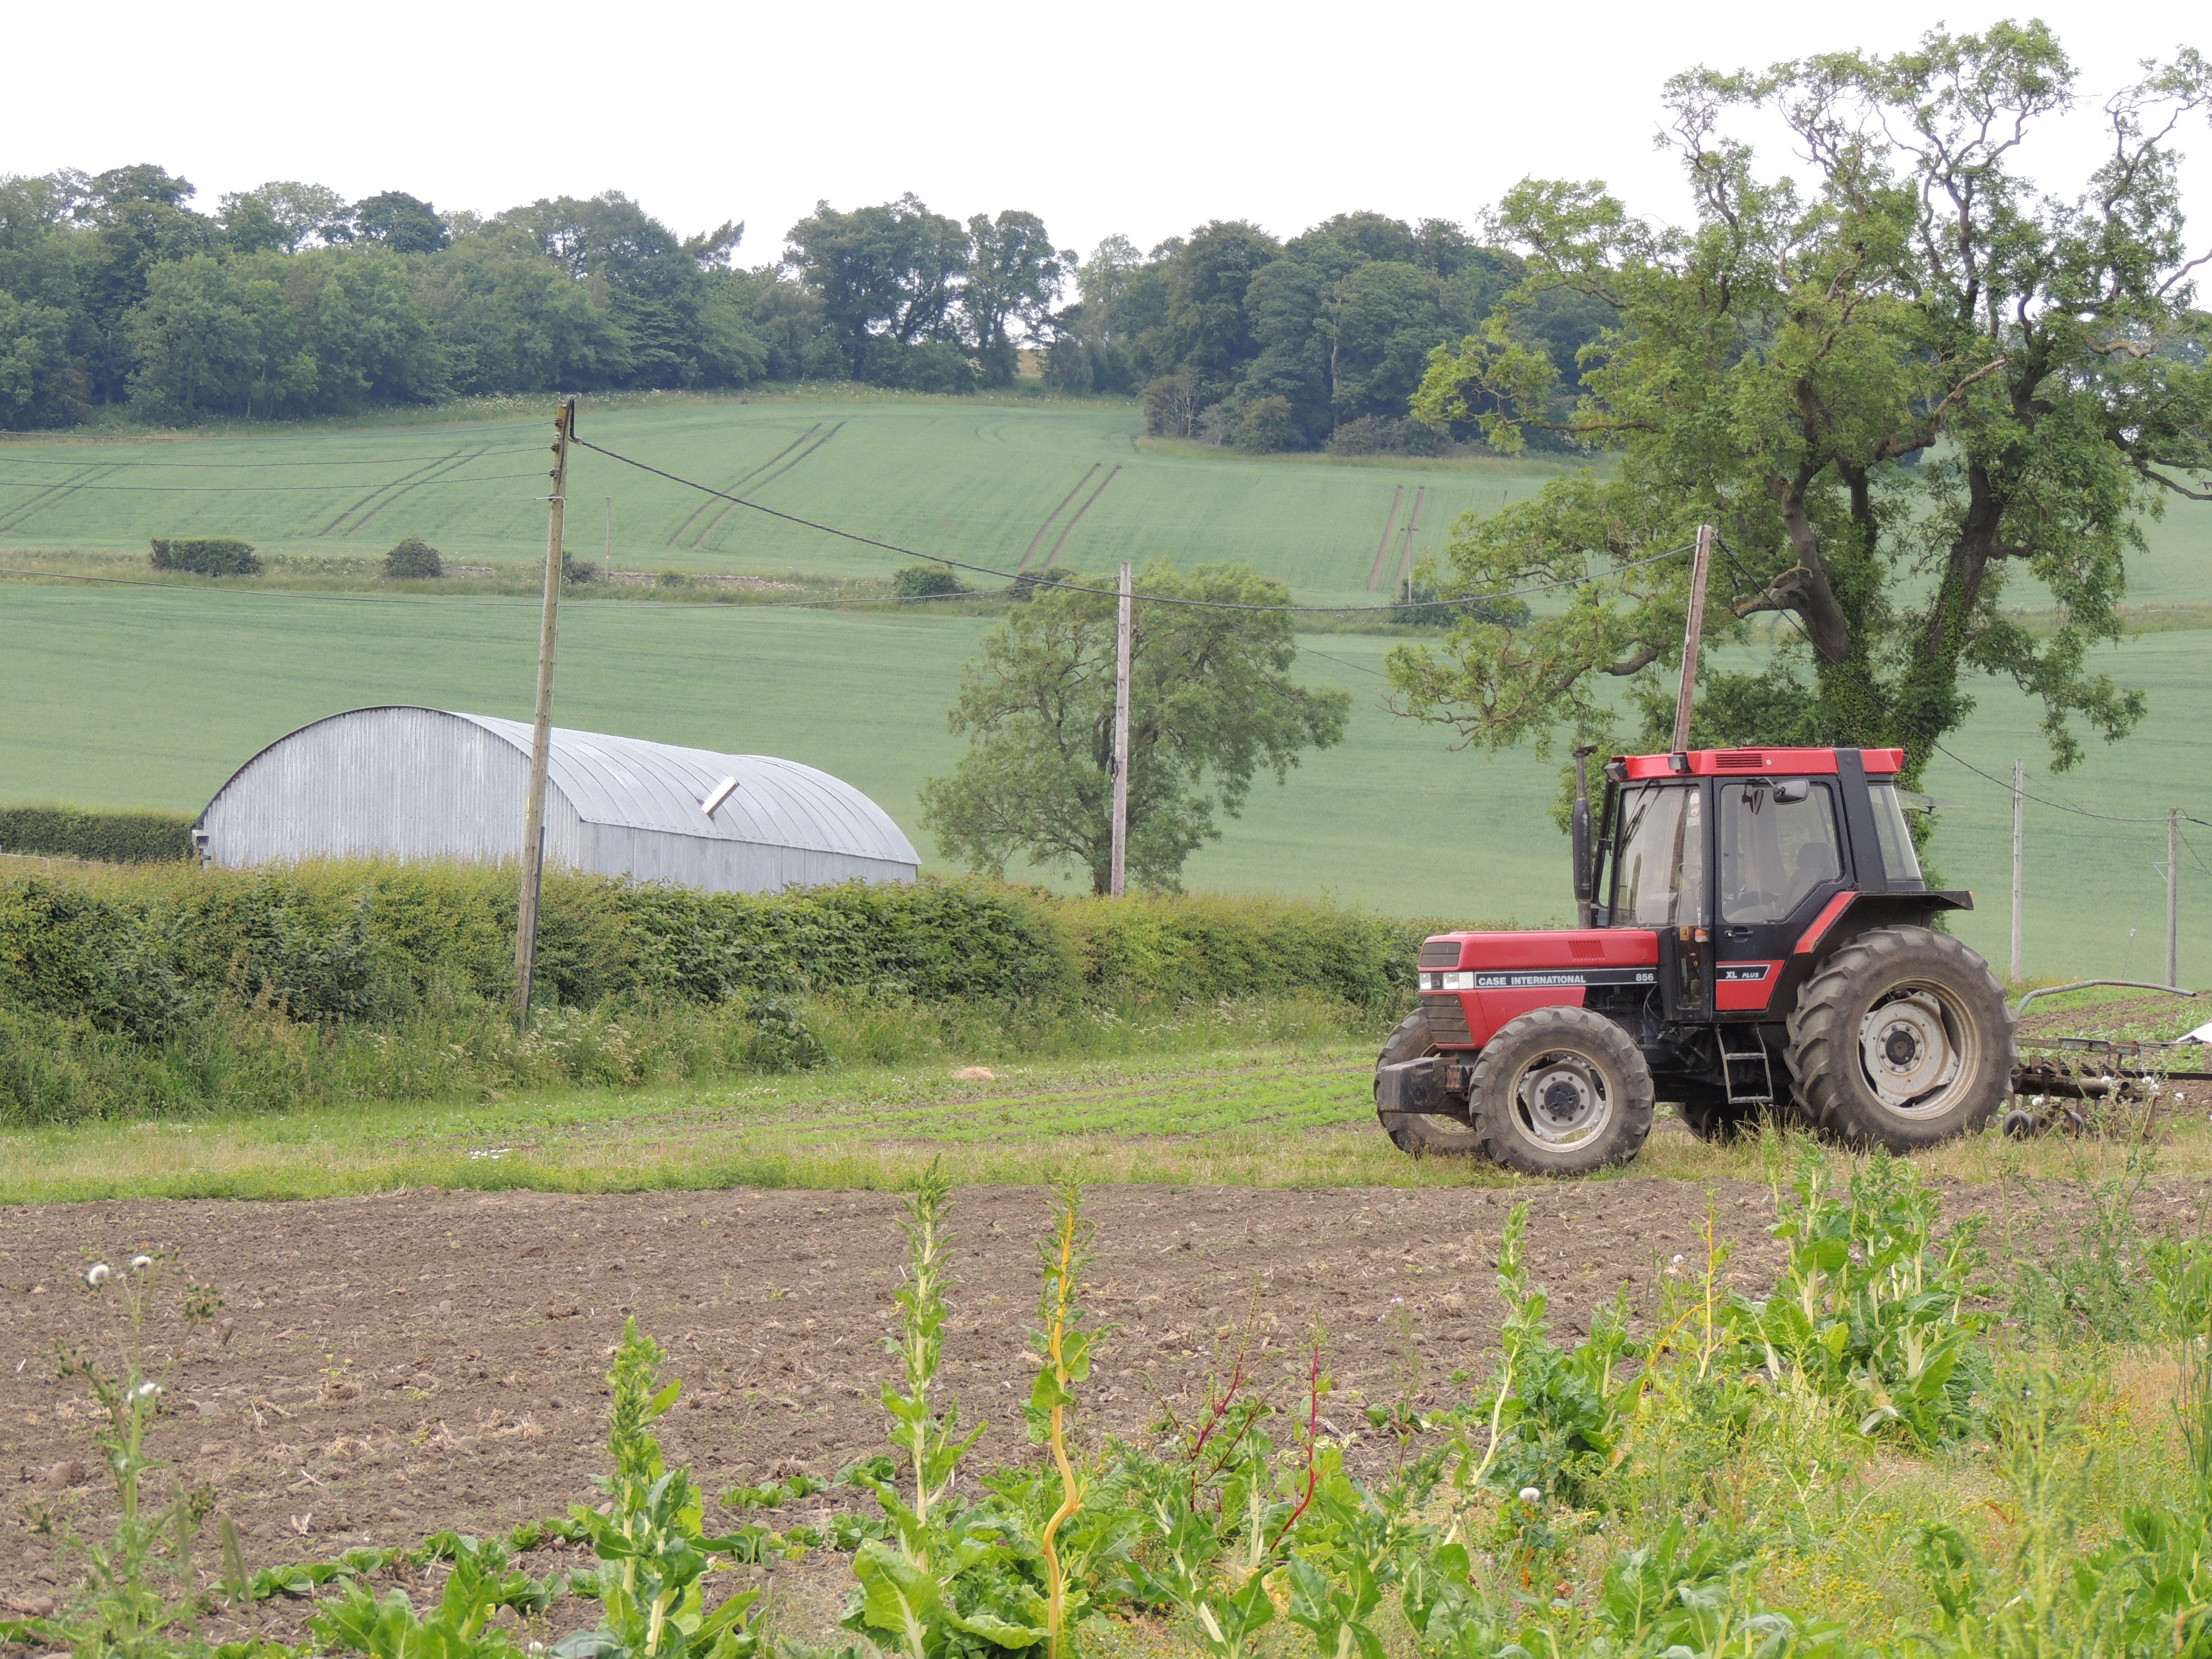 Overview with tractor